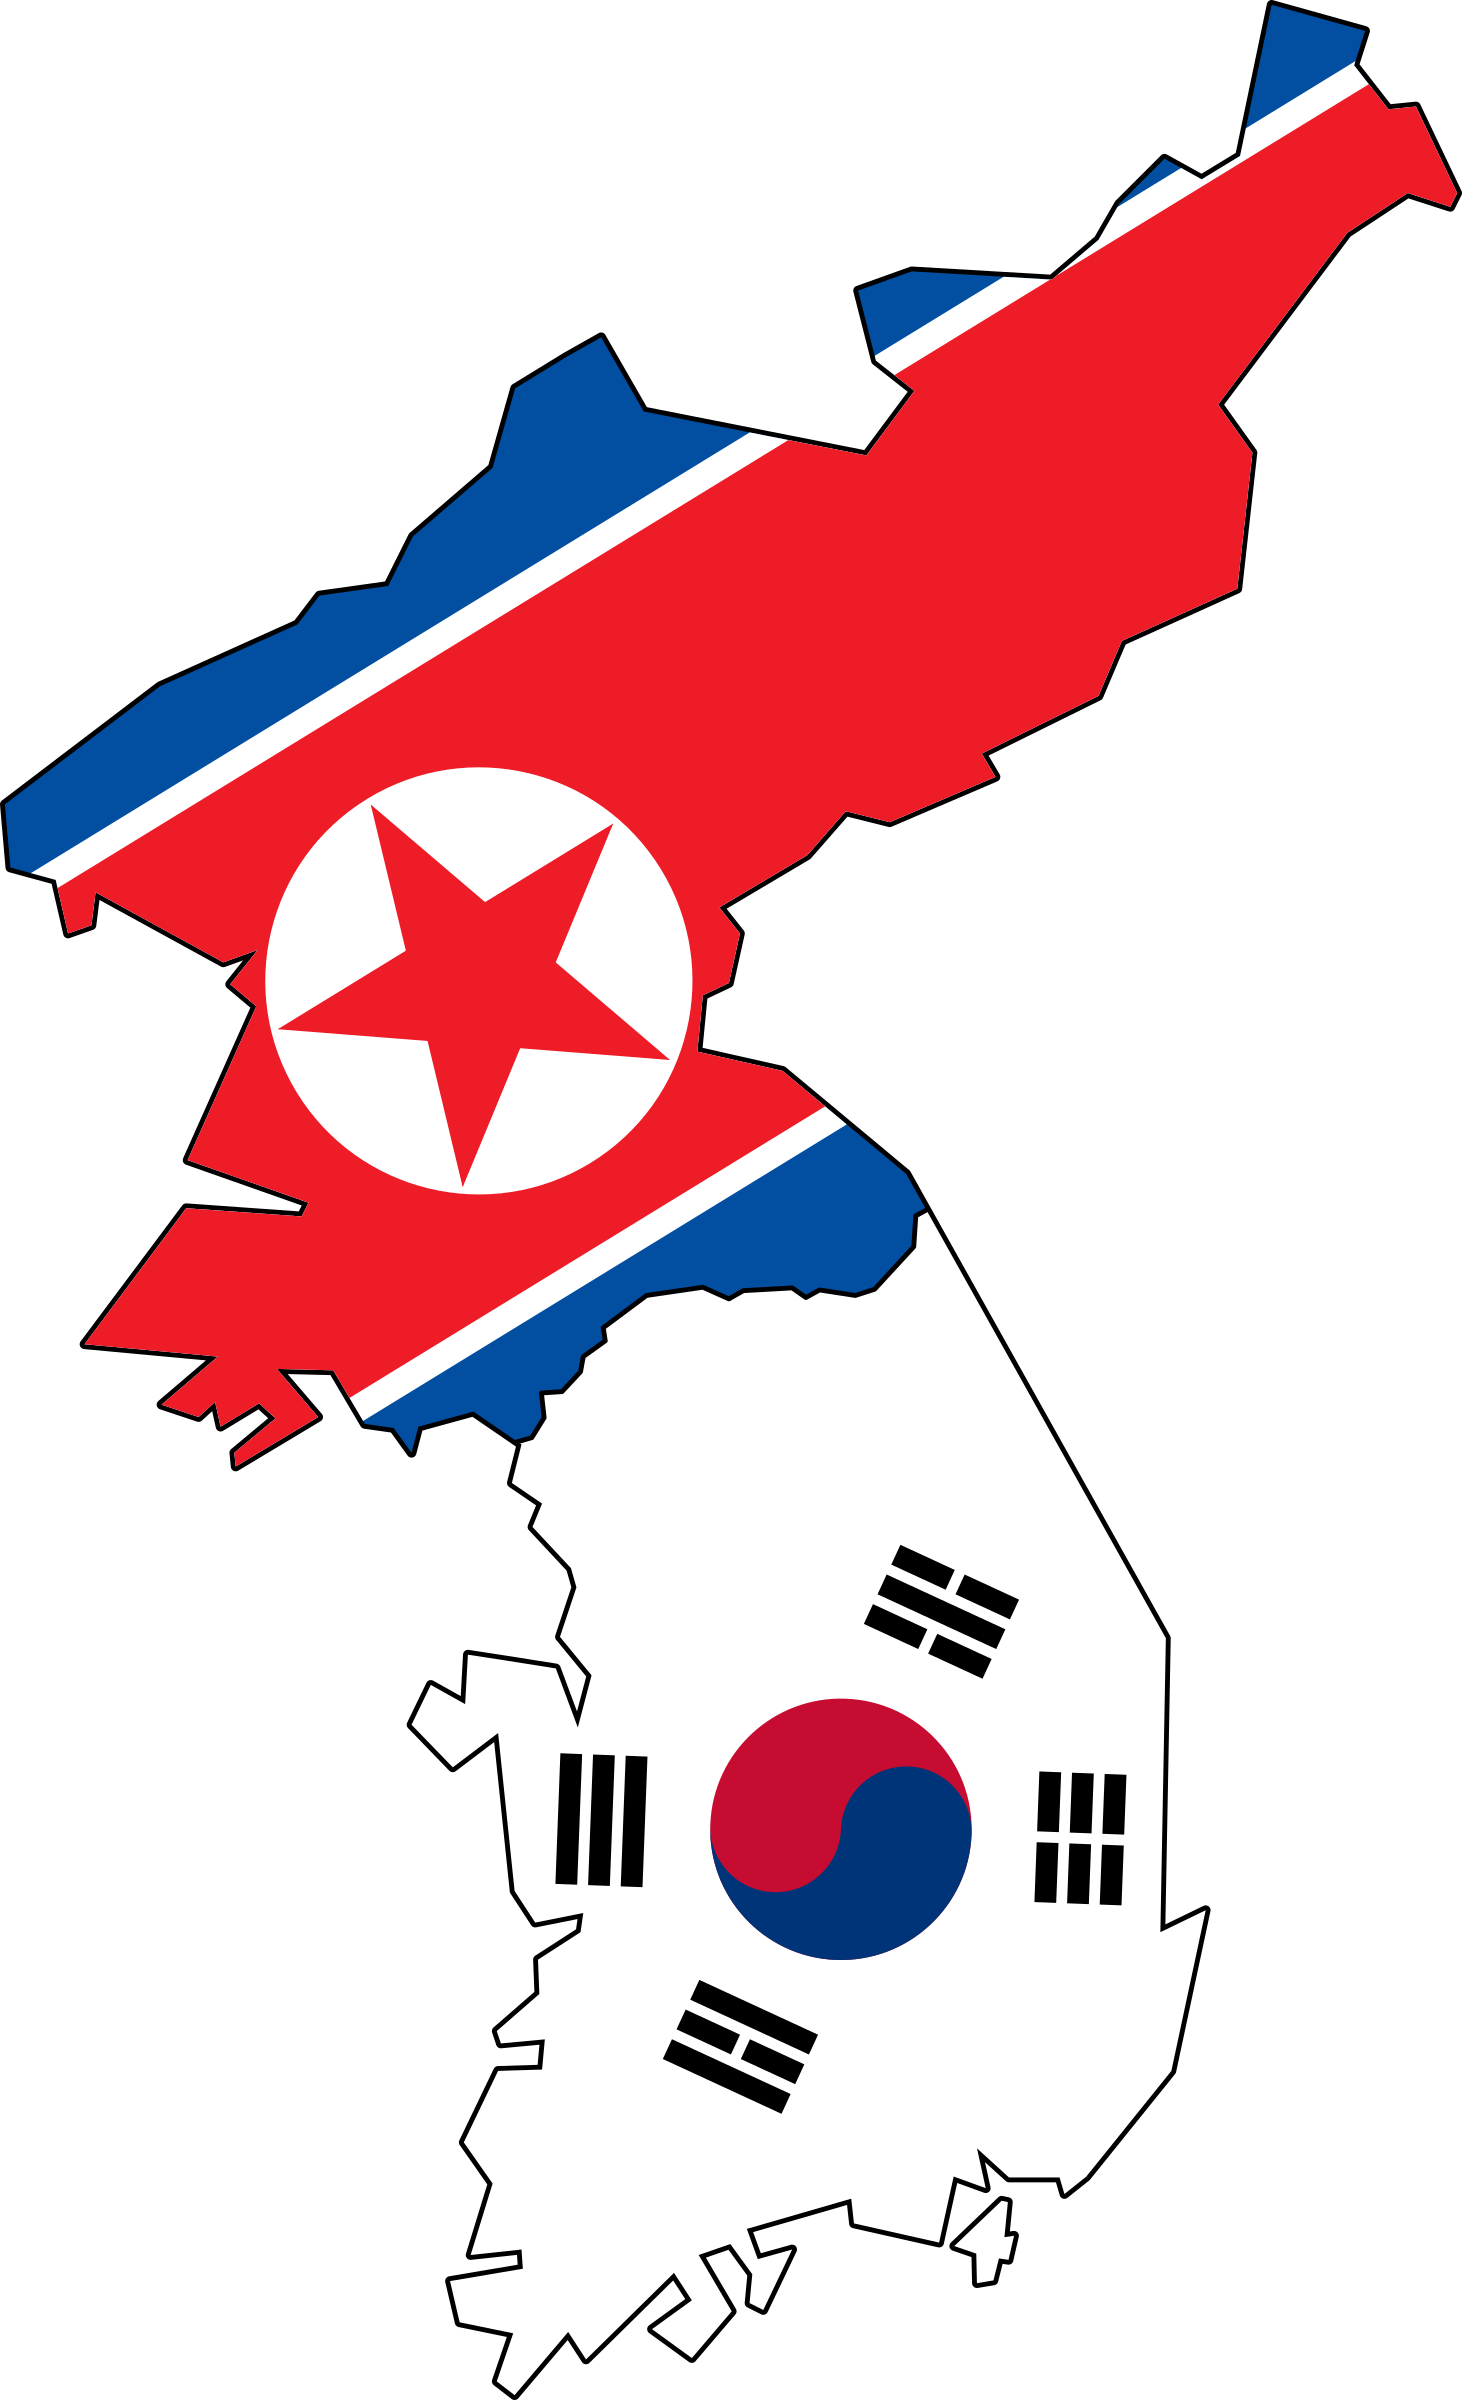 South Korea clipart #13, Download drawings